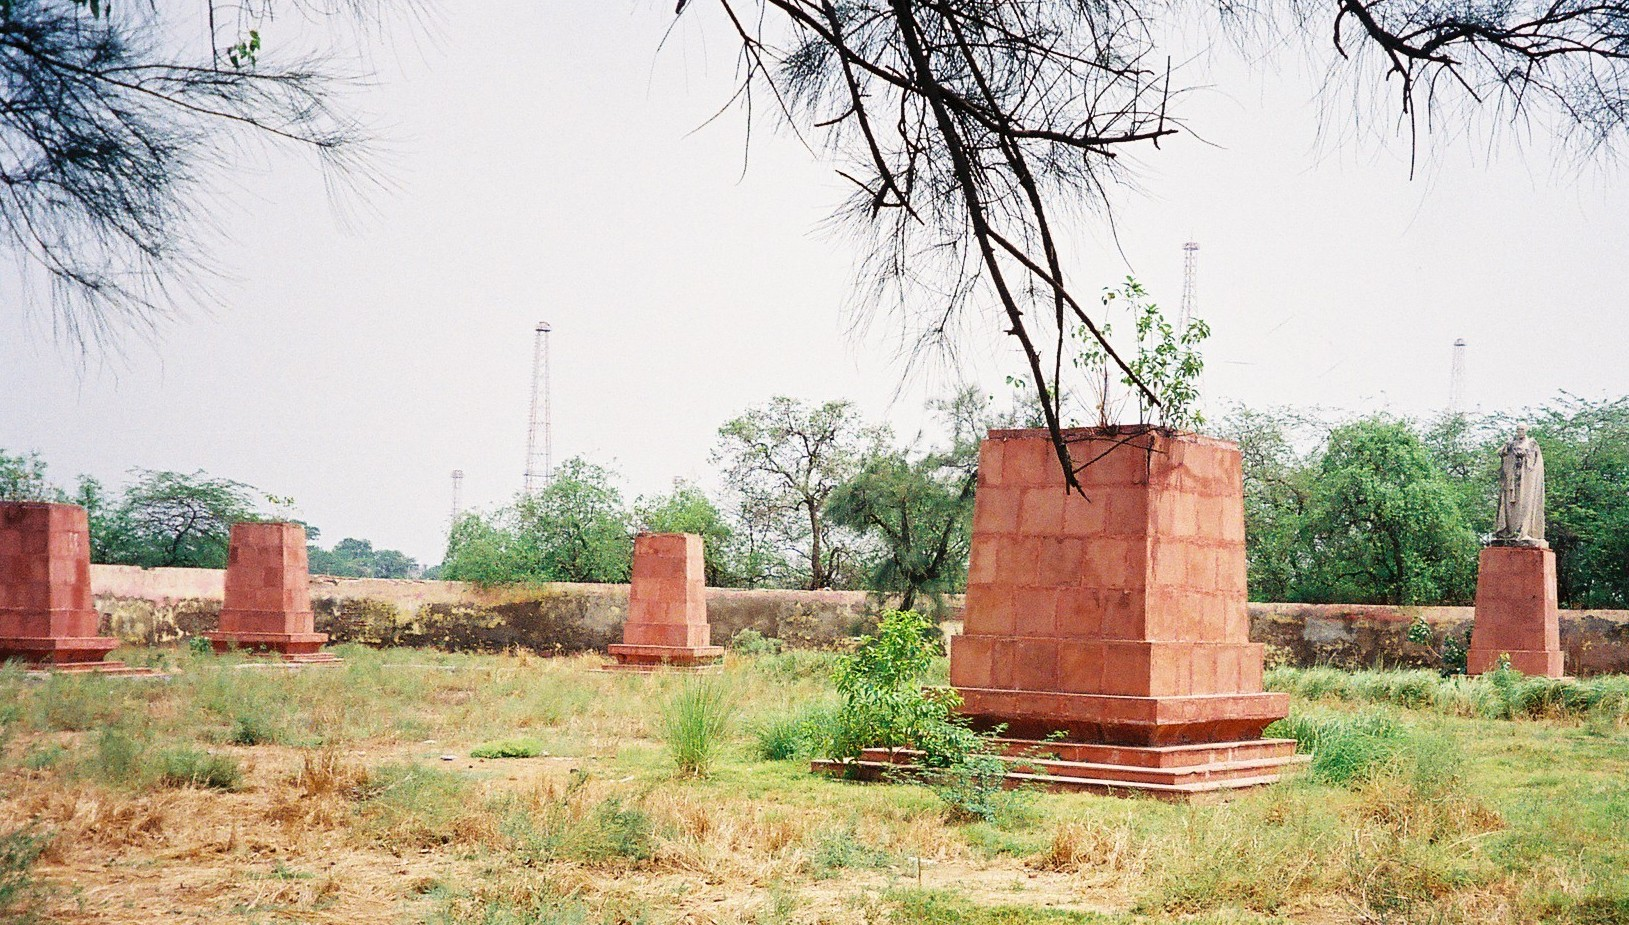 Empty plinths without their statues at the Coronation Grounds. (Credit: Nvvchar / Wikimedia Commons CC BY 3.0)